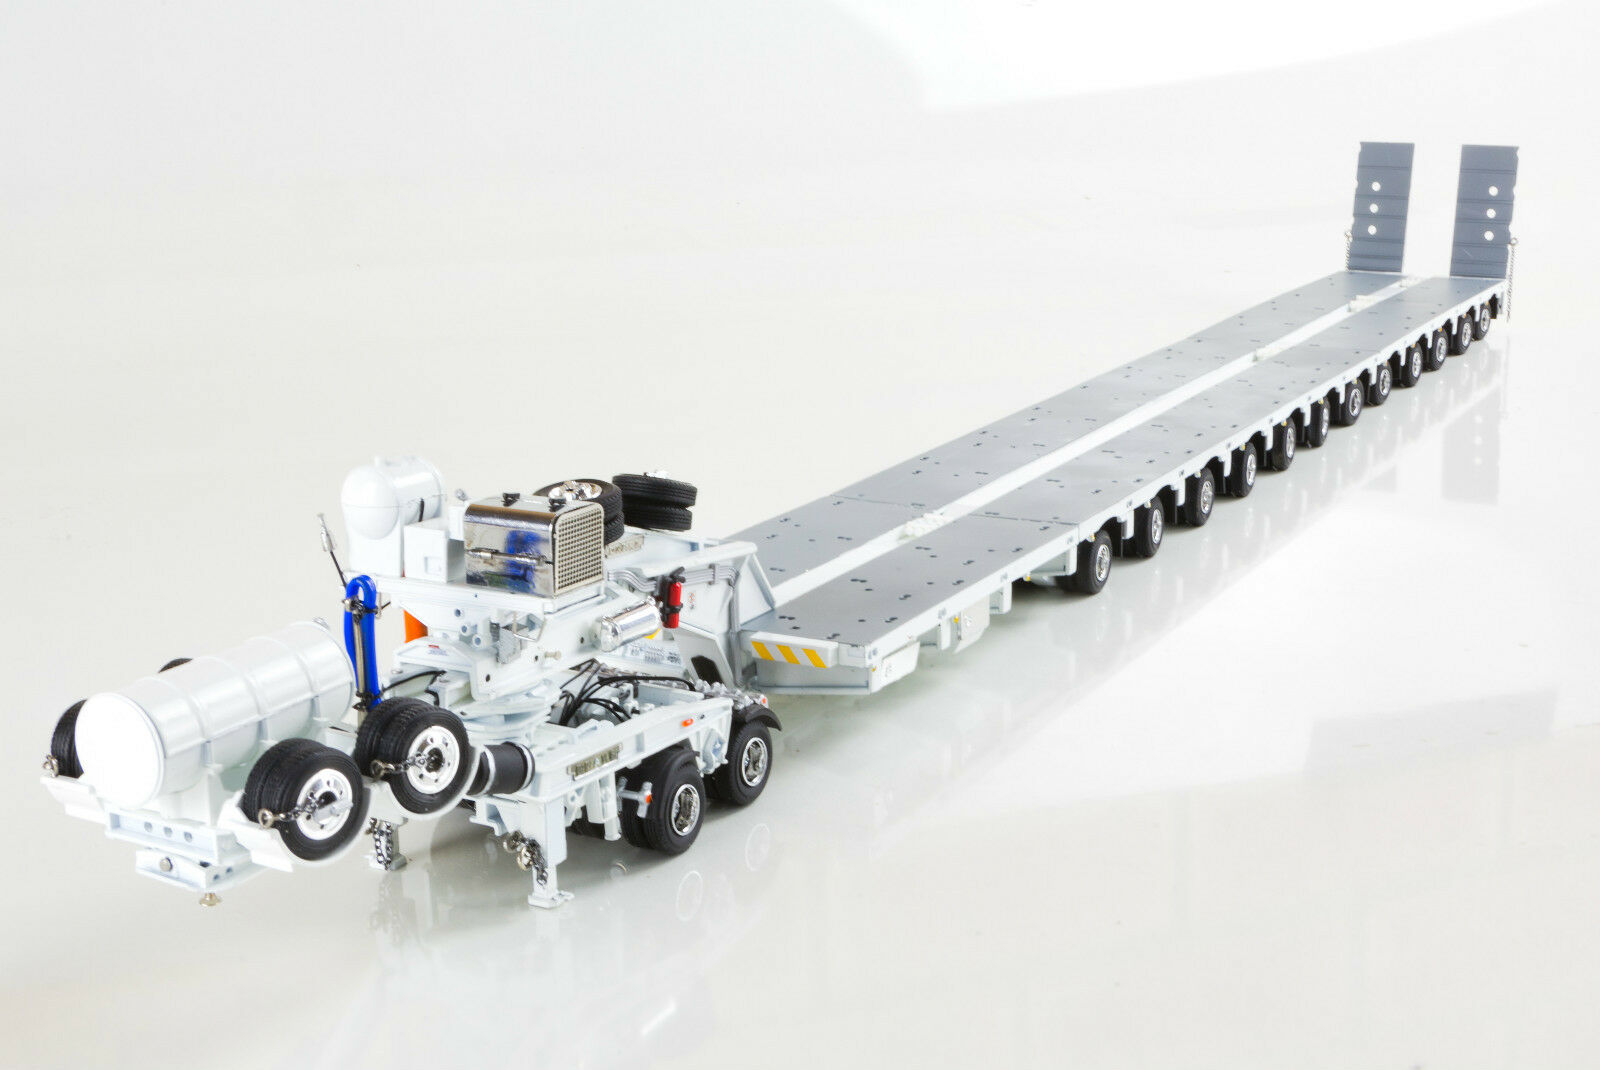 DRAKE 7x8 STEERABLE TRAILER with 2x8 DOLLY & 5x8 ACCESSORY CLIP SET - WHITE